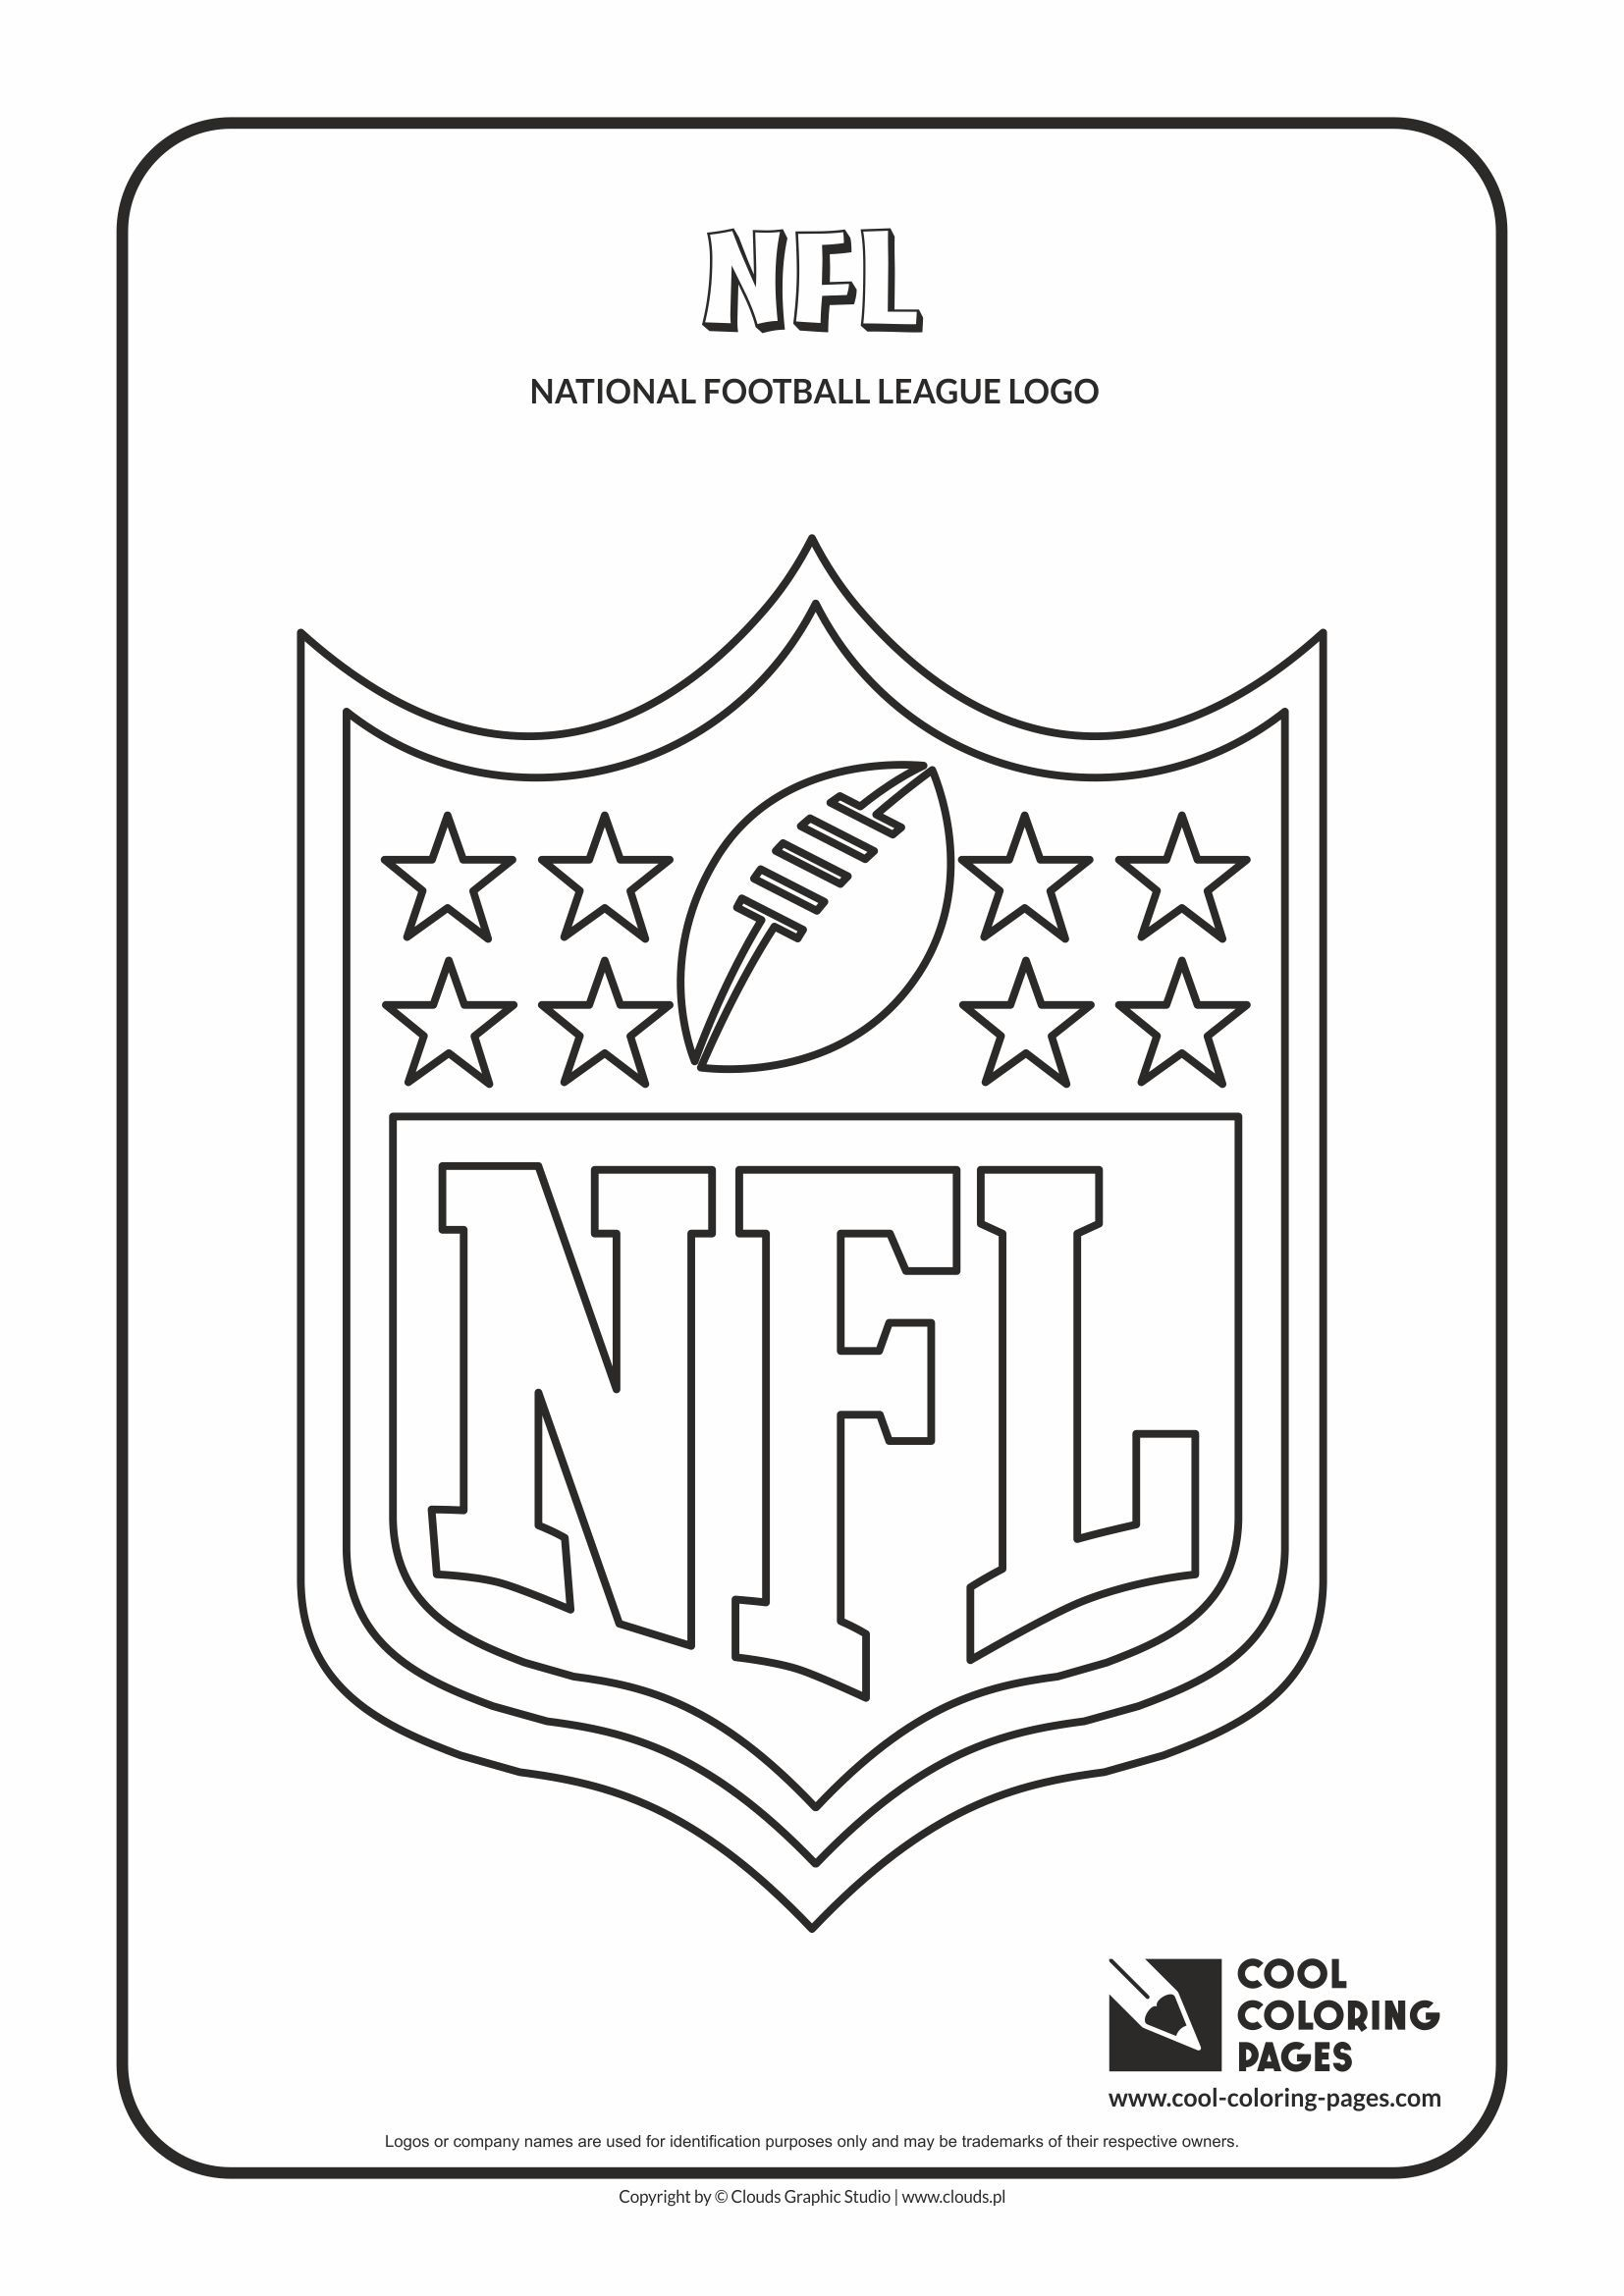 Nfl Logo Coloring Pages For 2019 Http Www Wallpaperartdesignhd Us Nfl Logo Coloring Pages For 2019 47182 Football Coloring Pages Nfl Logo Nfl Teams Logos